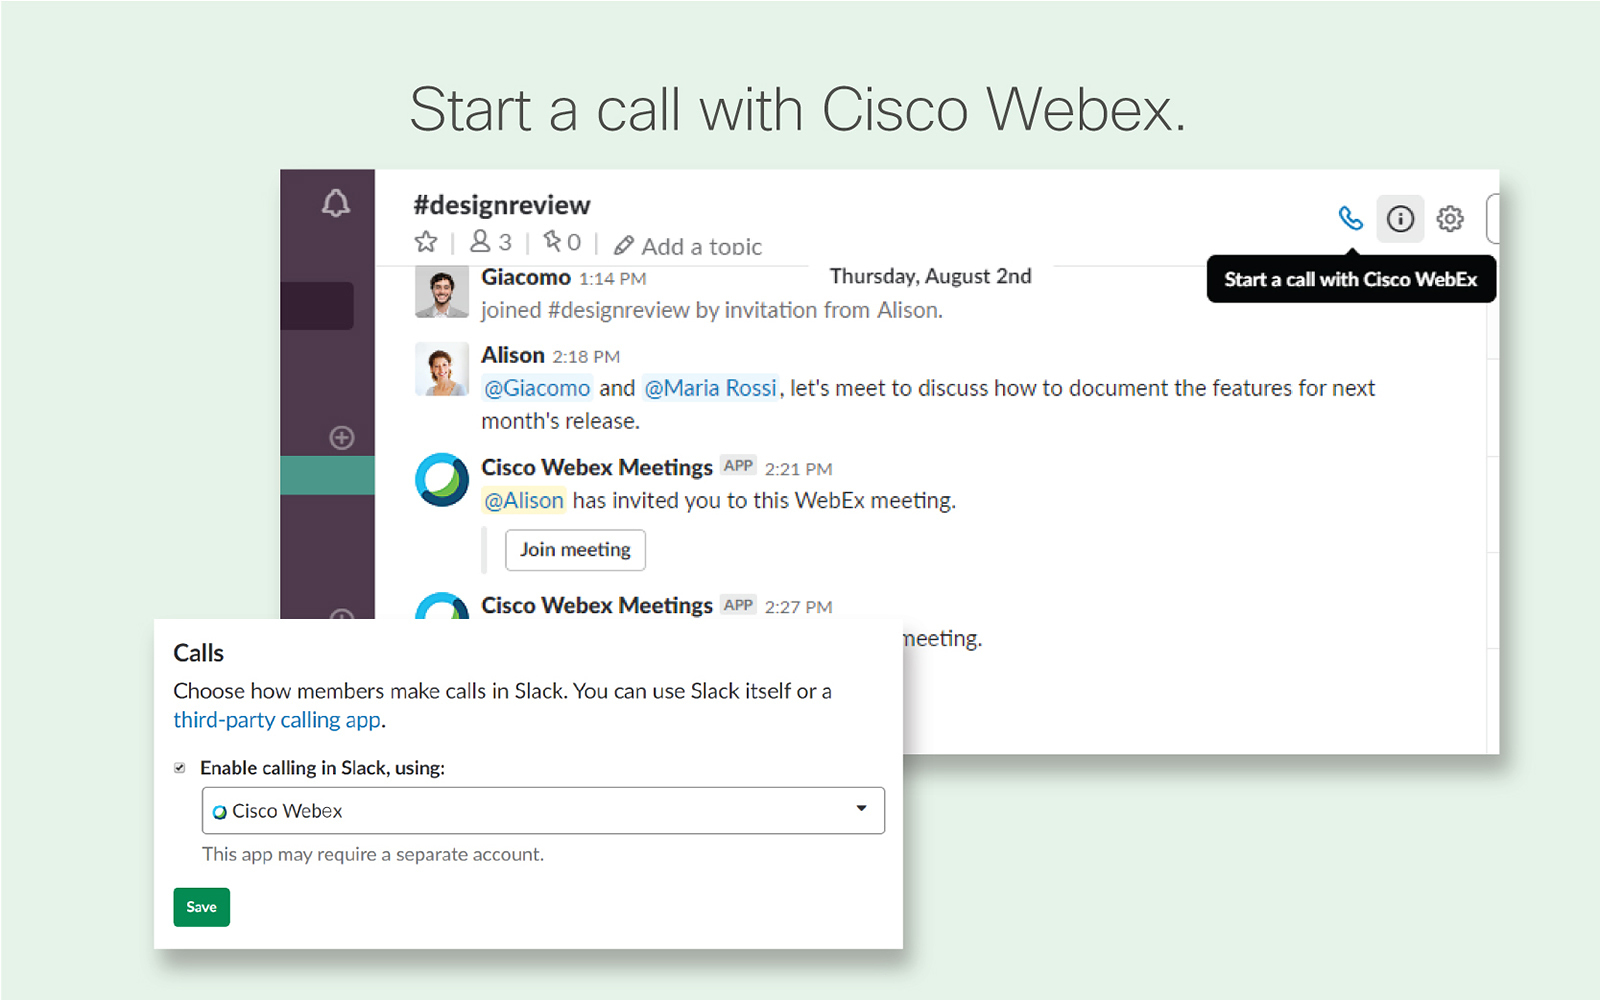 Cisco Webex Meetings | Slack App Directory